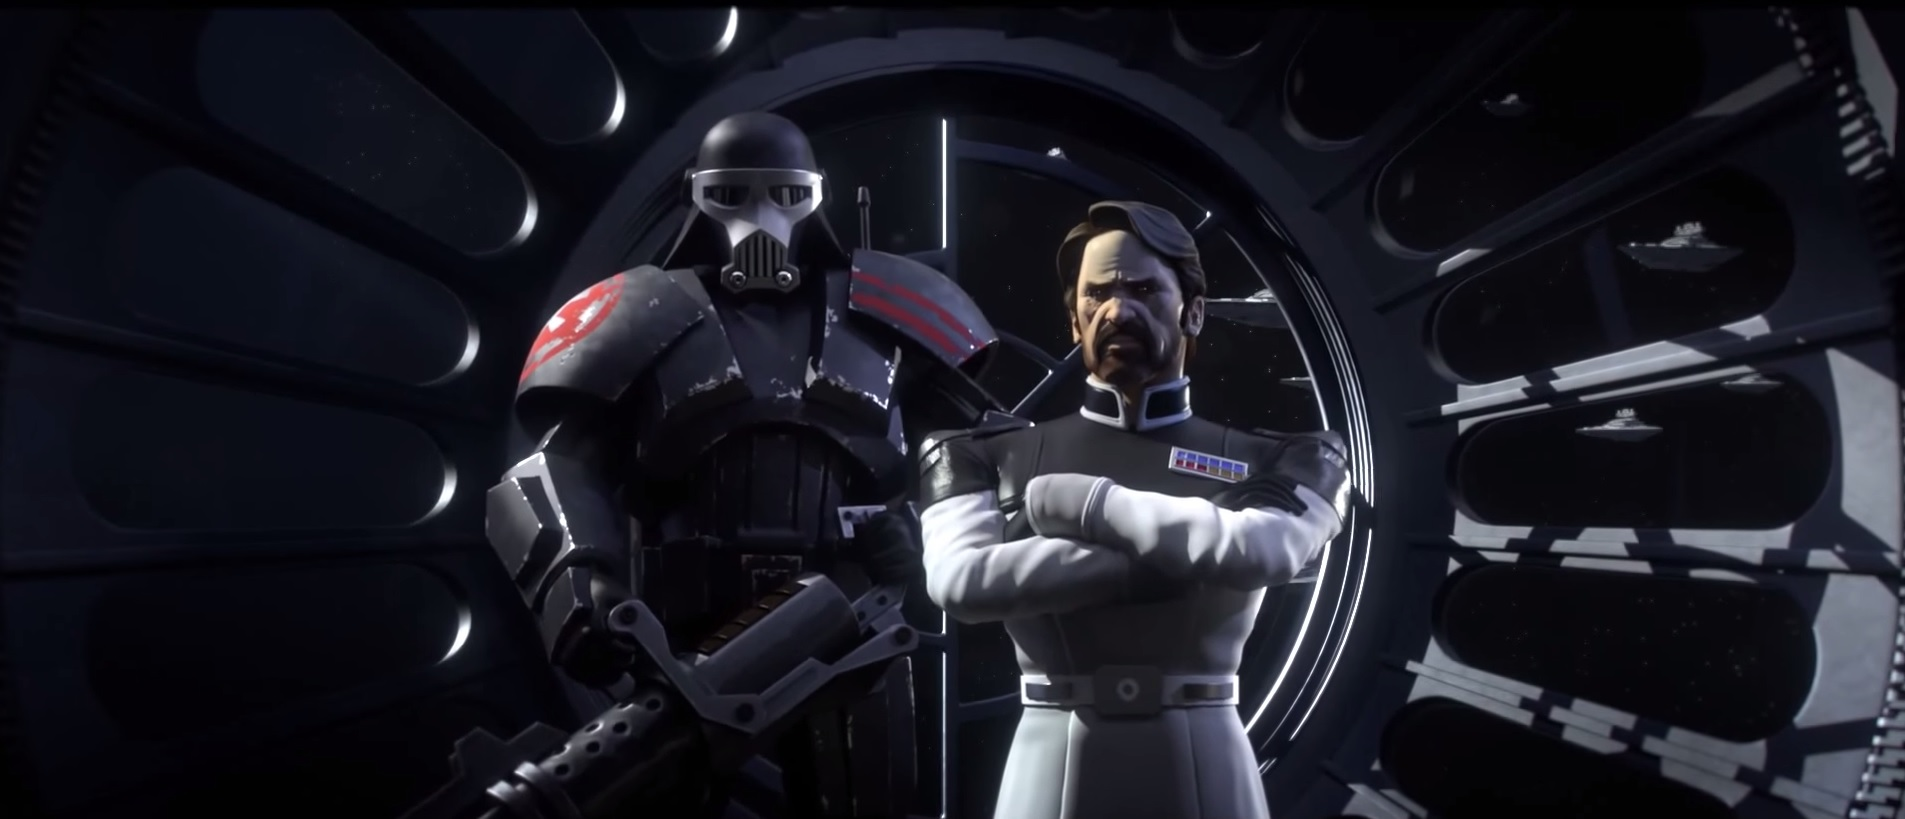 A New Star Wars Mobile Game Is Coming